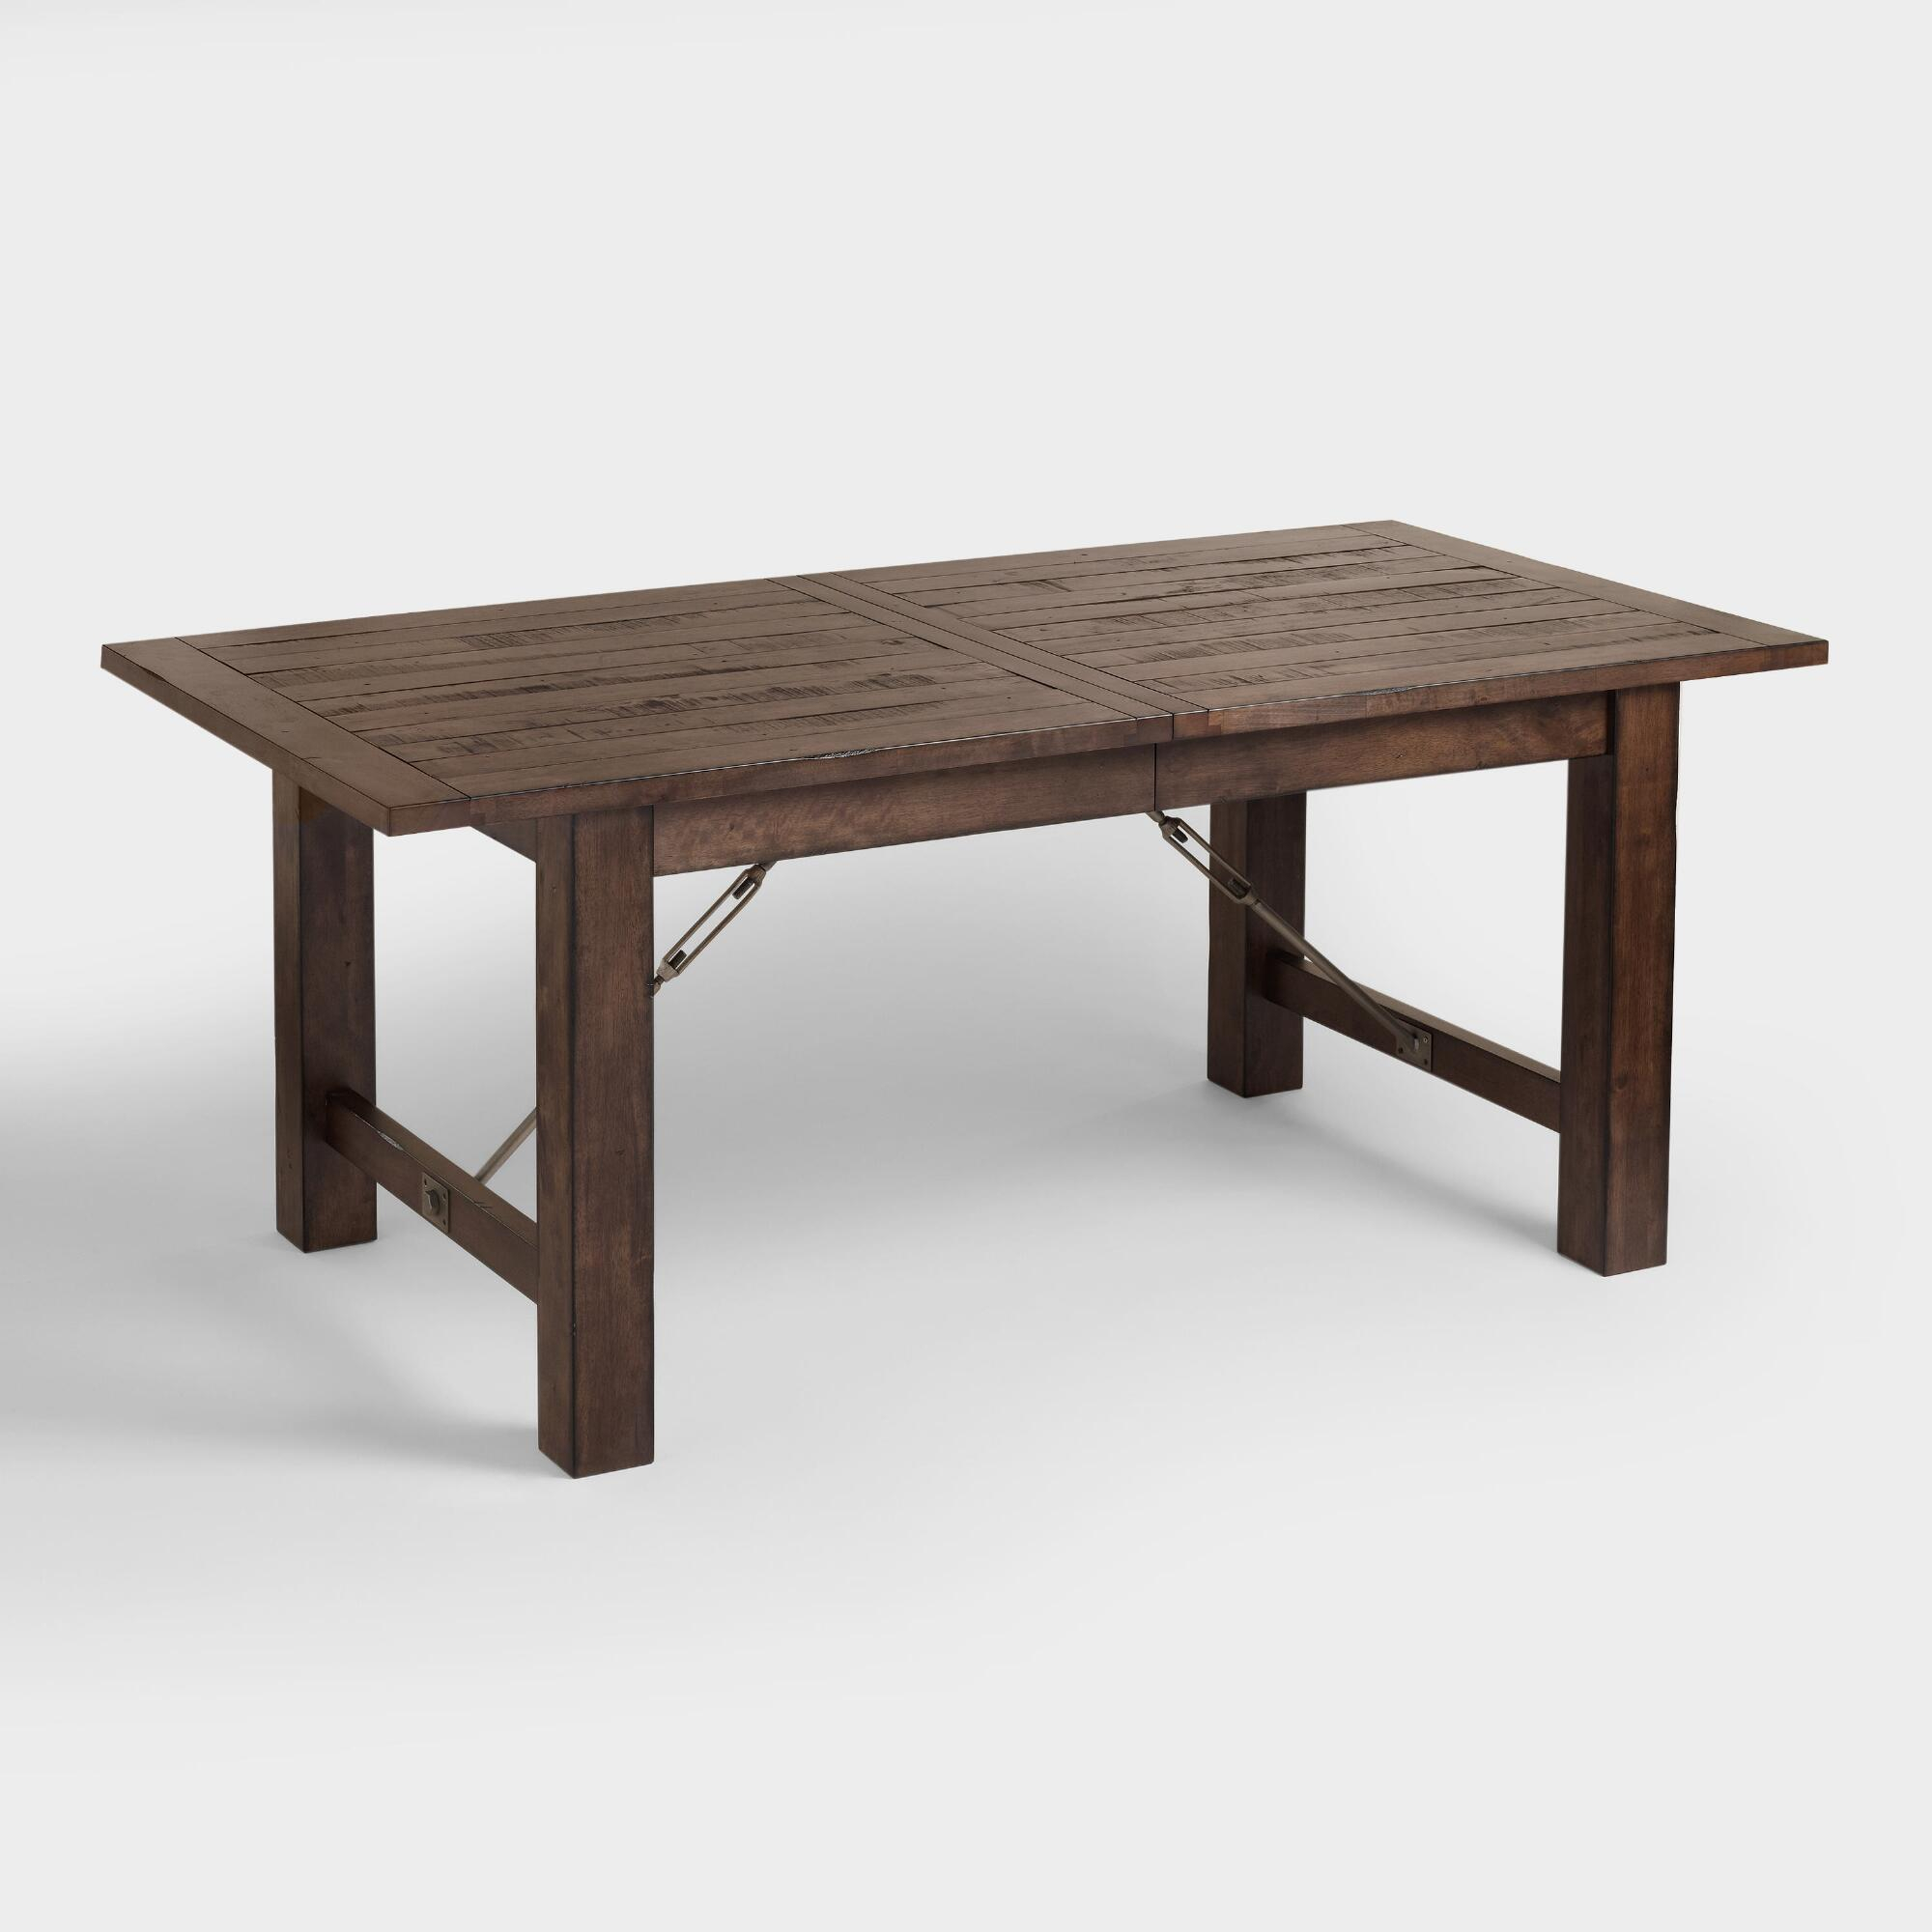 Wood Garner Extension Dining Table: Brownworld Market In For 2018 Blackened Oak Benchwright Extending Dining Tables (View 3 of 25)